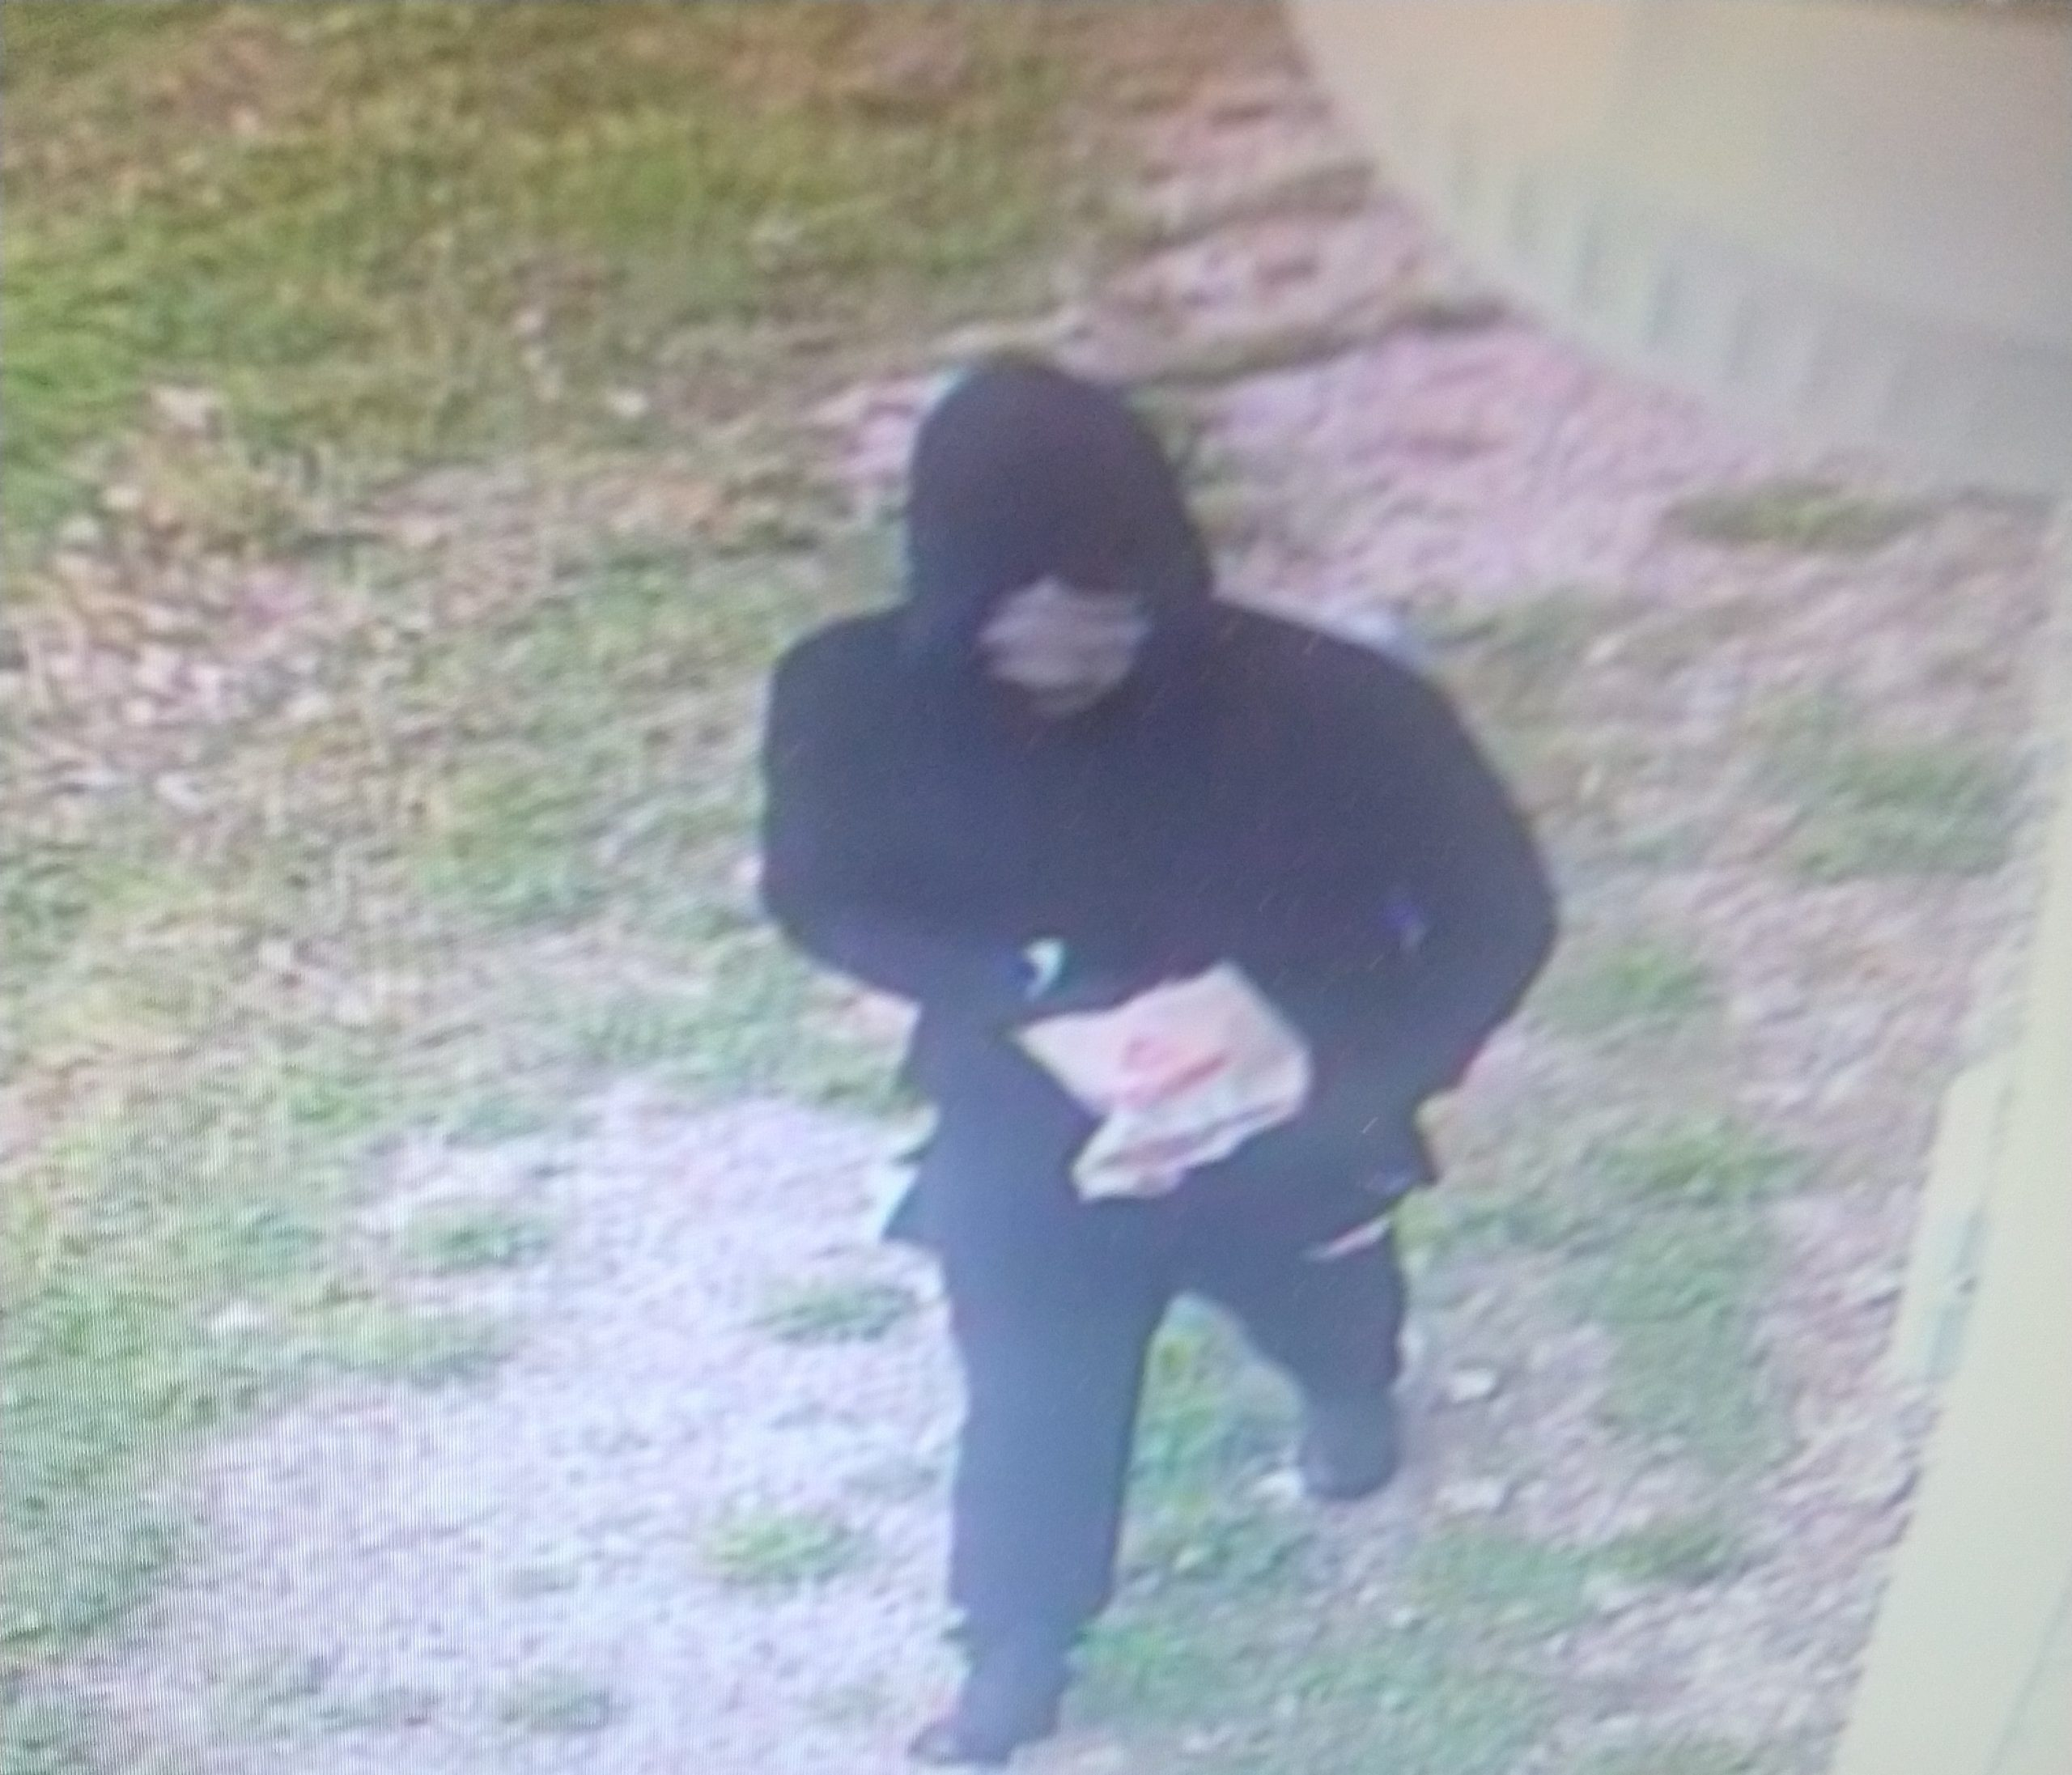 Moberly police say this person is responsible for an armed robbery reported in the 1000 block of N. Morley Street on Saturday, April 17, 2021.